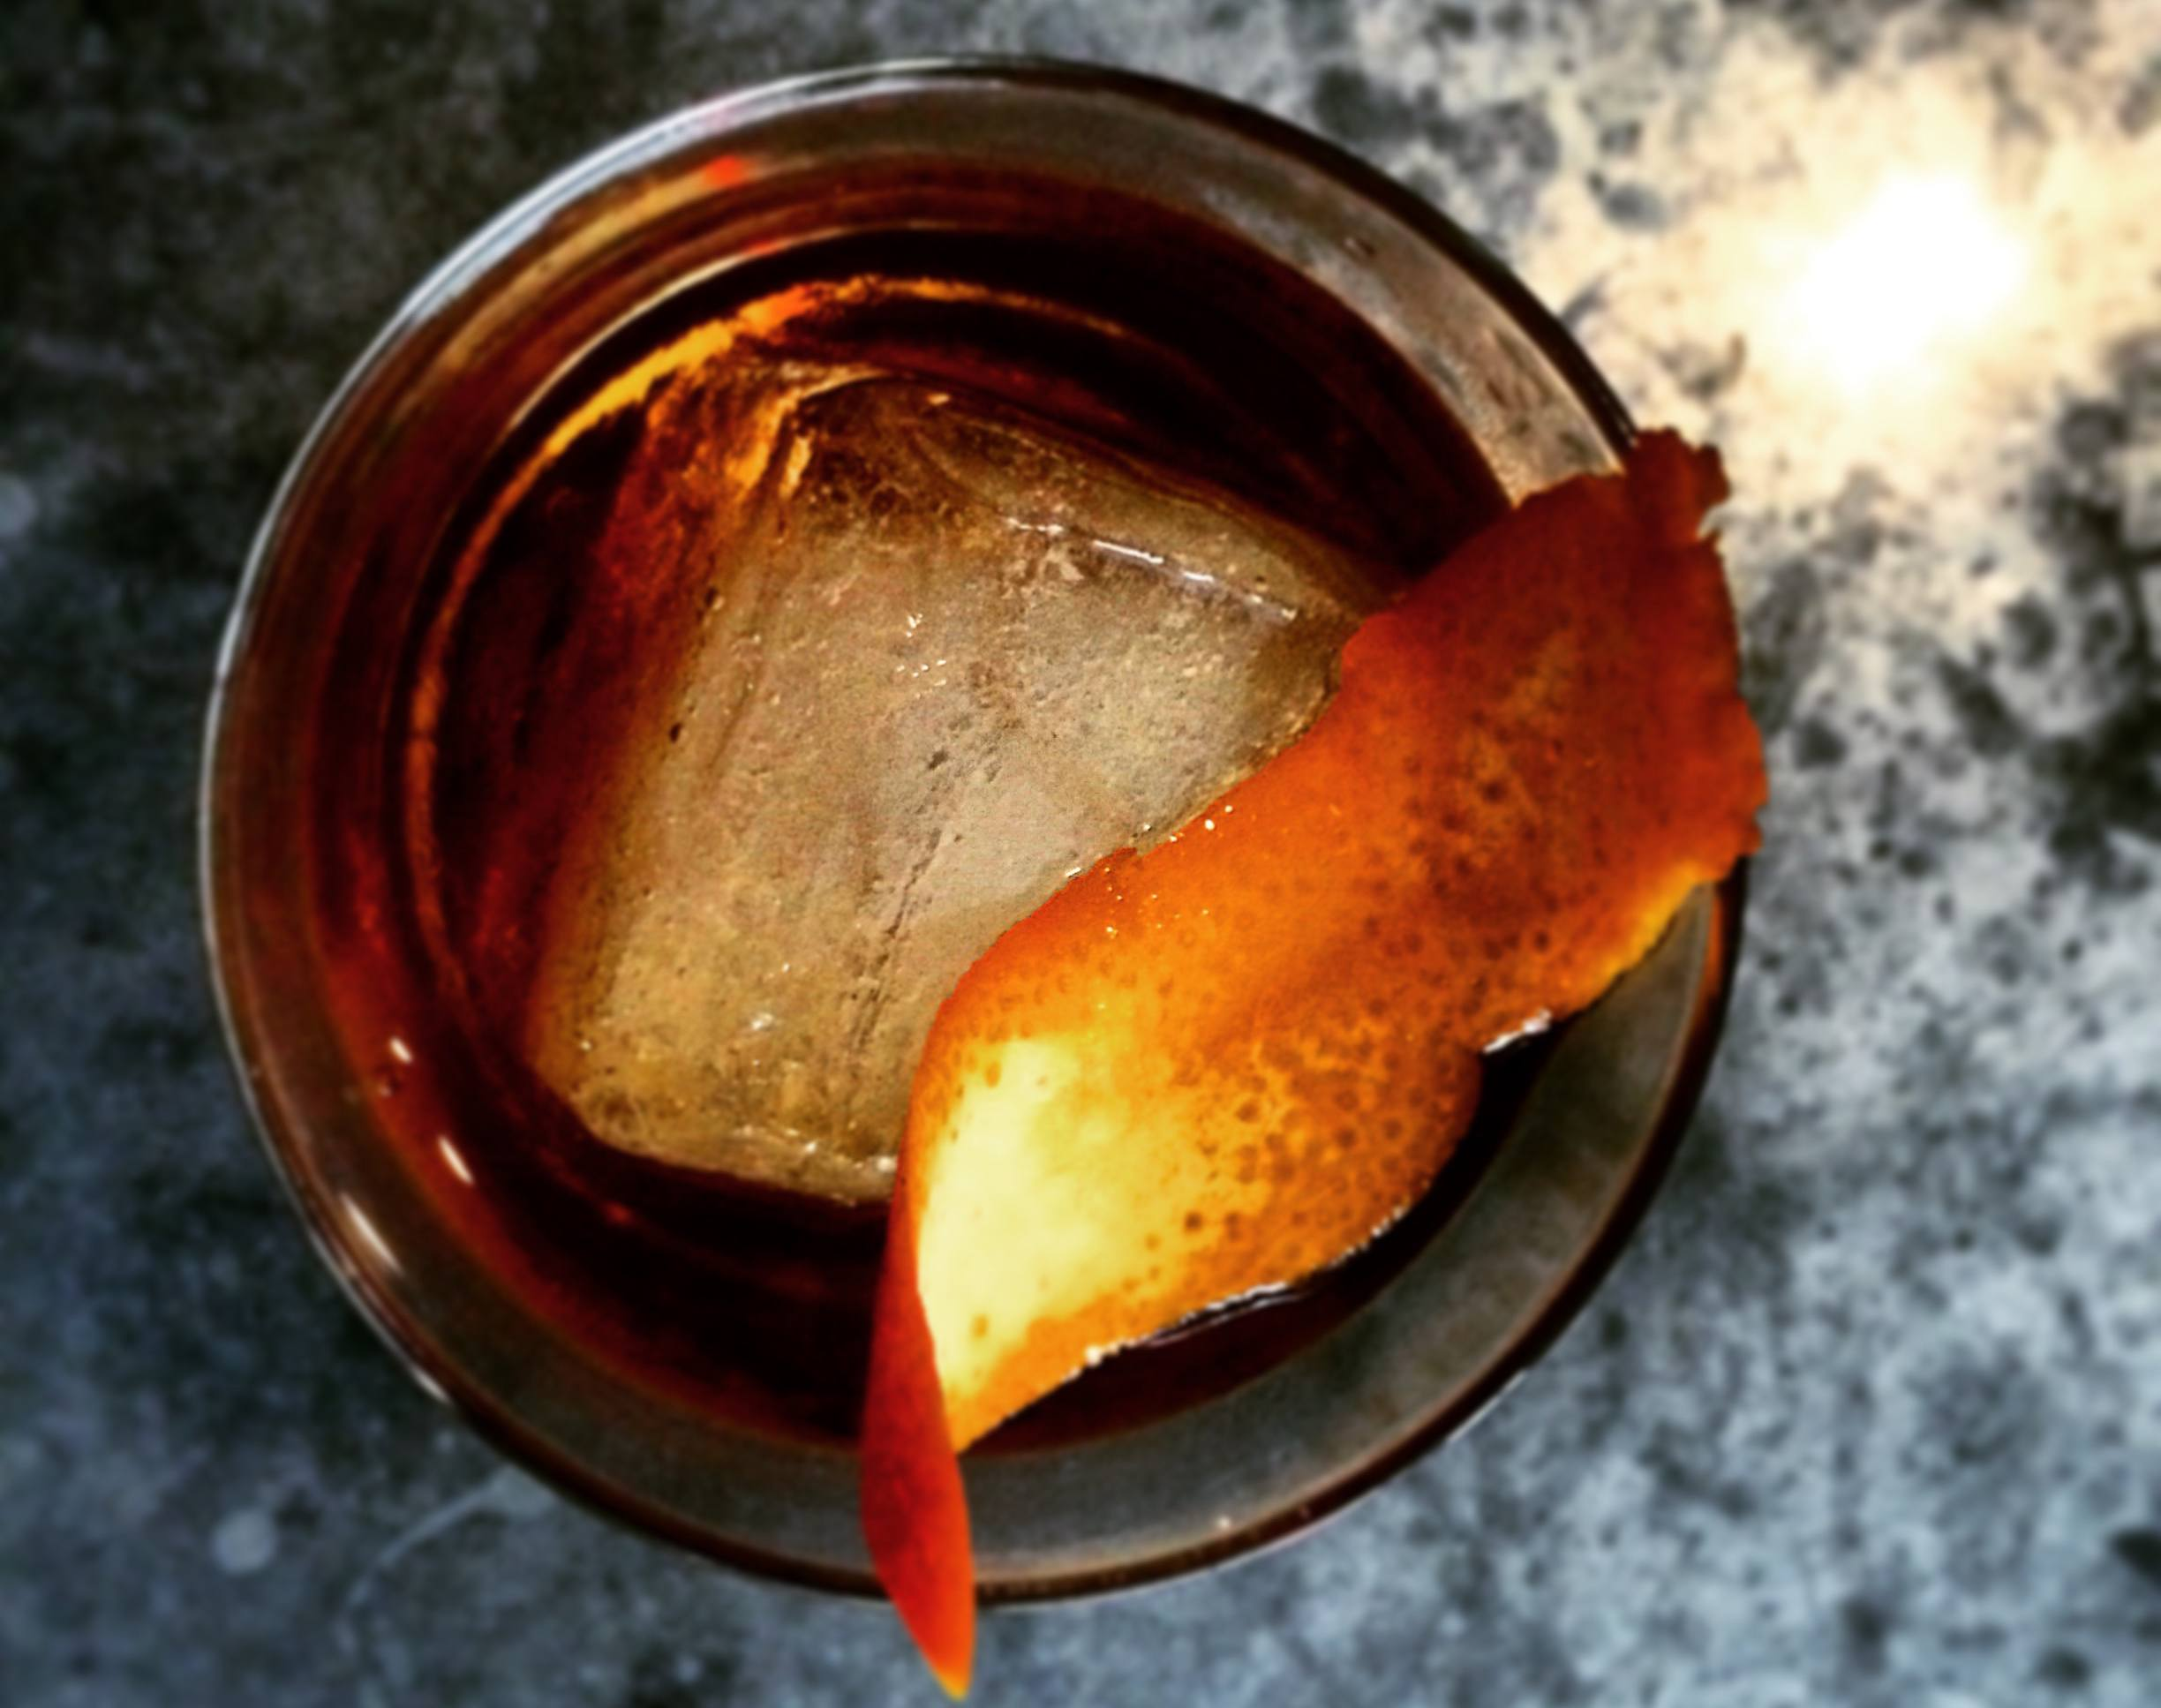 Whiskey Cocktail with Orange Peel